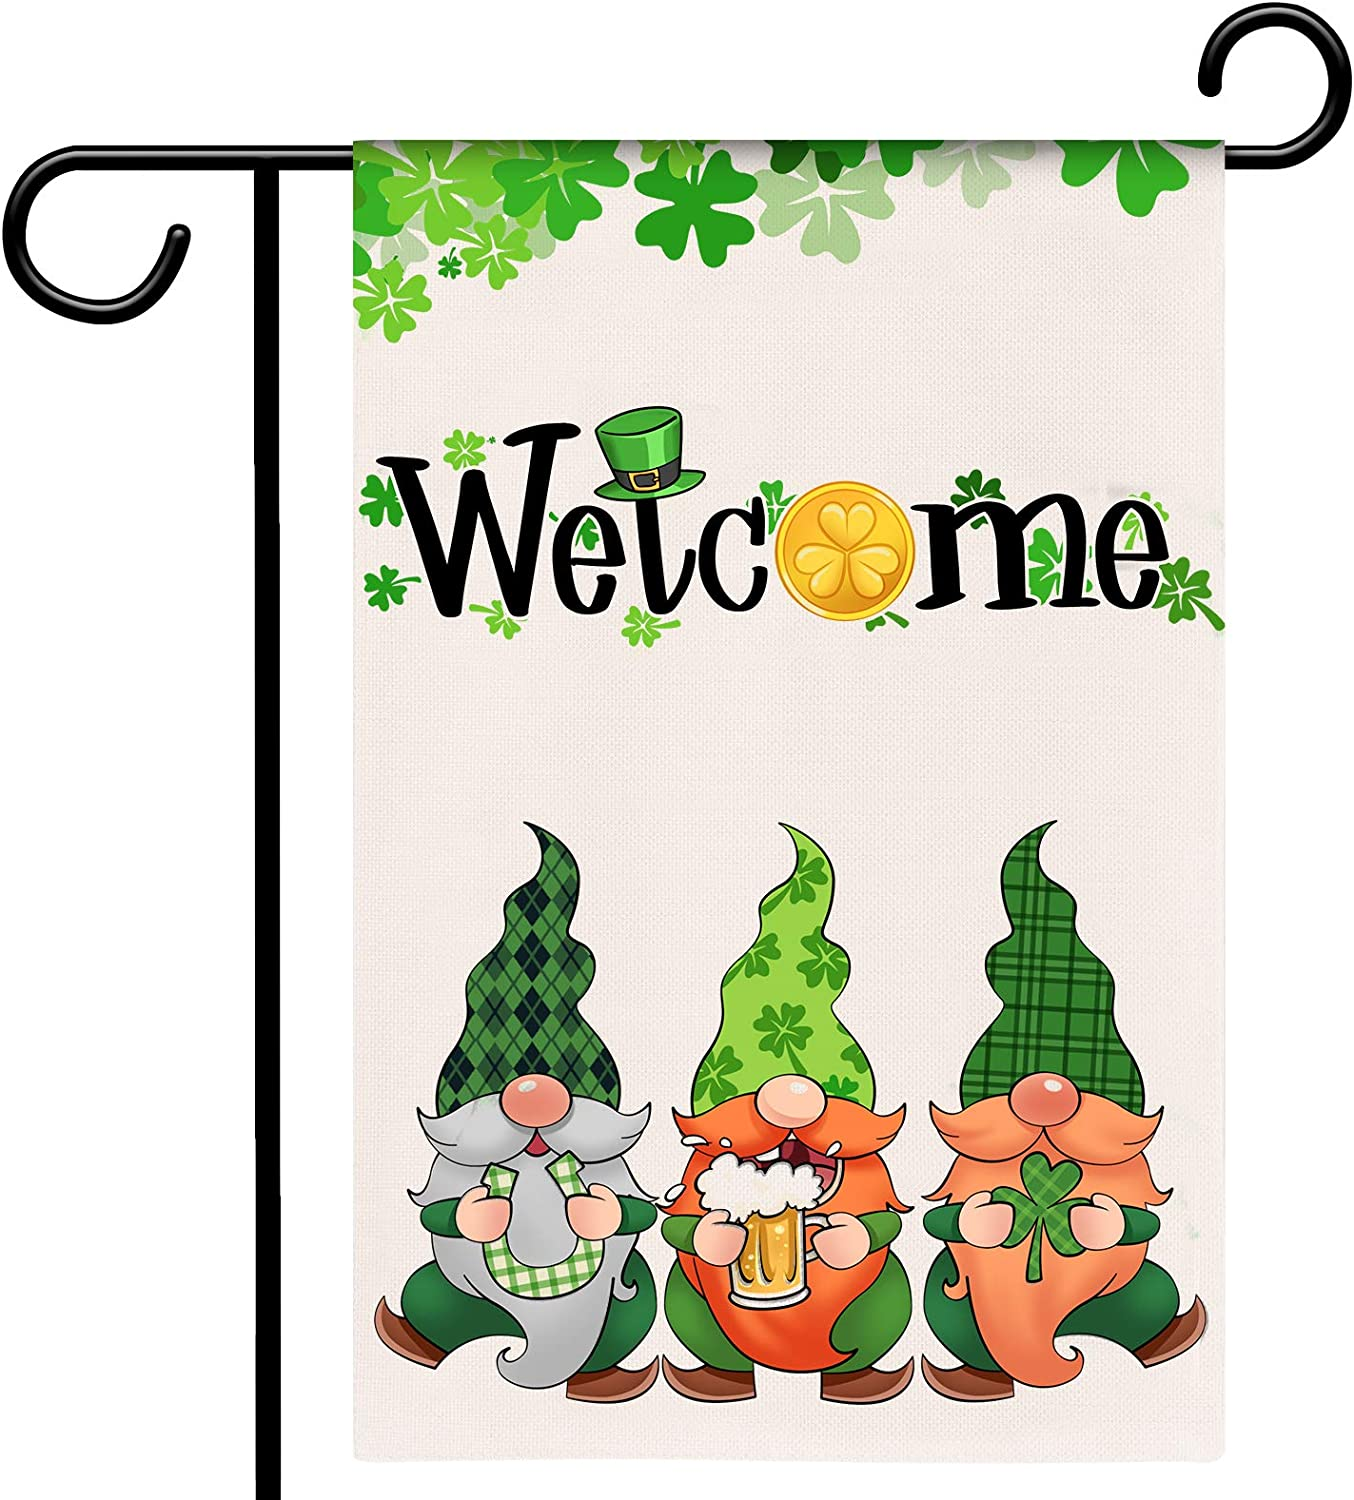 Tmflexe St Patrick Day Garden Flag Gnome Welcome Flag Vertical Double Sided House Flag Spring Holiday Burlap Rustic Yard Lawn Outdoor Decoration 12.5x18 Inch (St Patrick's Day Gnome)